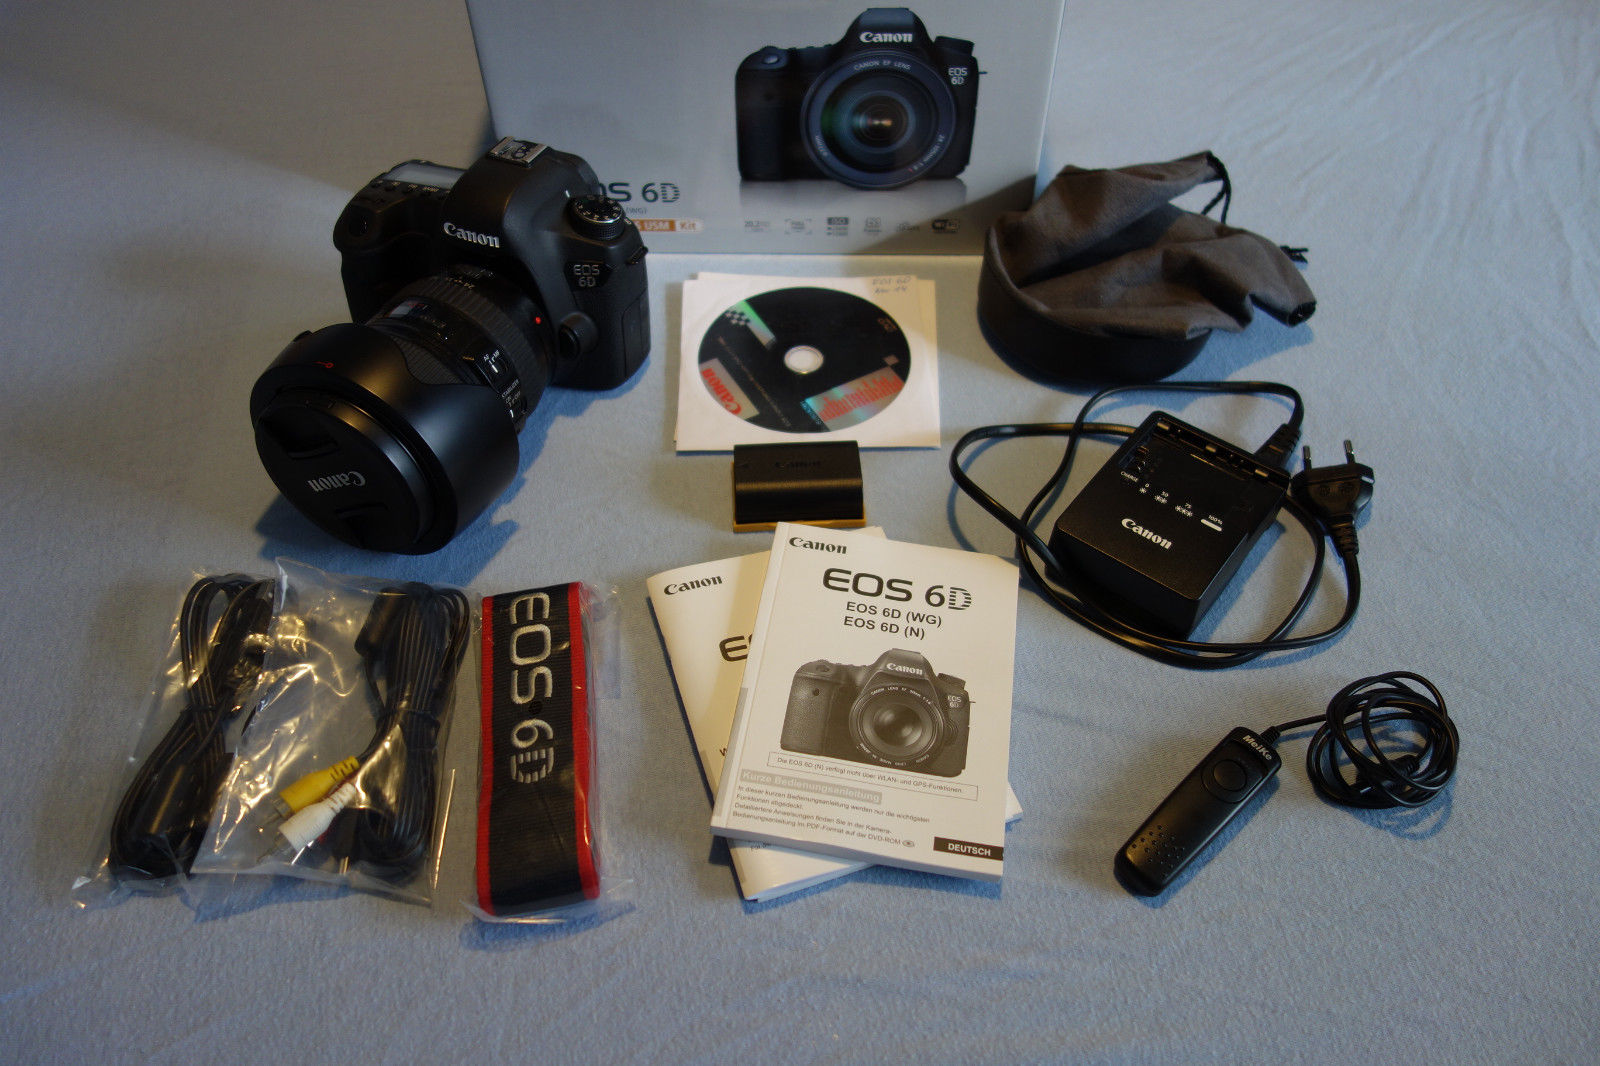 Canon EOS 6D DSLR mit EF 24-105mm/f4 L IS USM